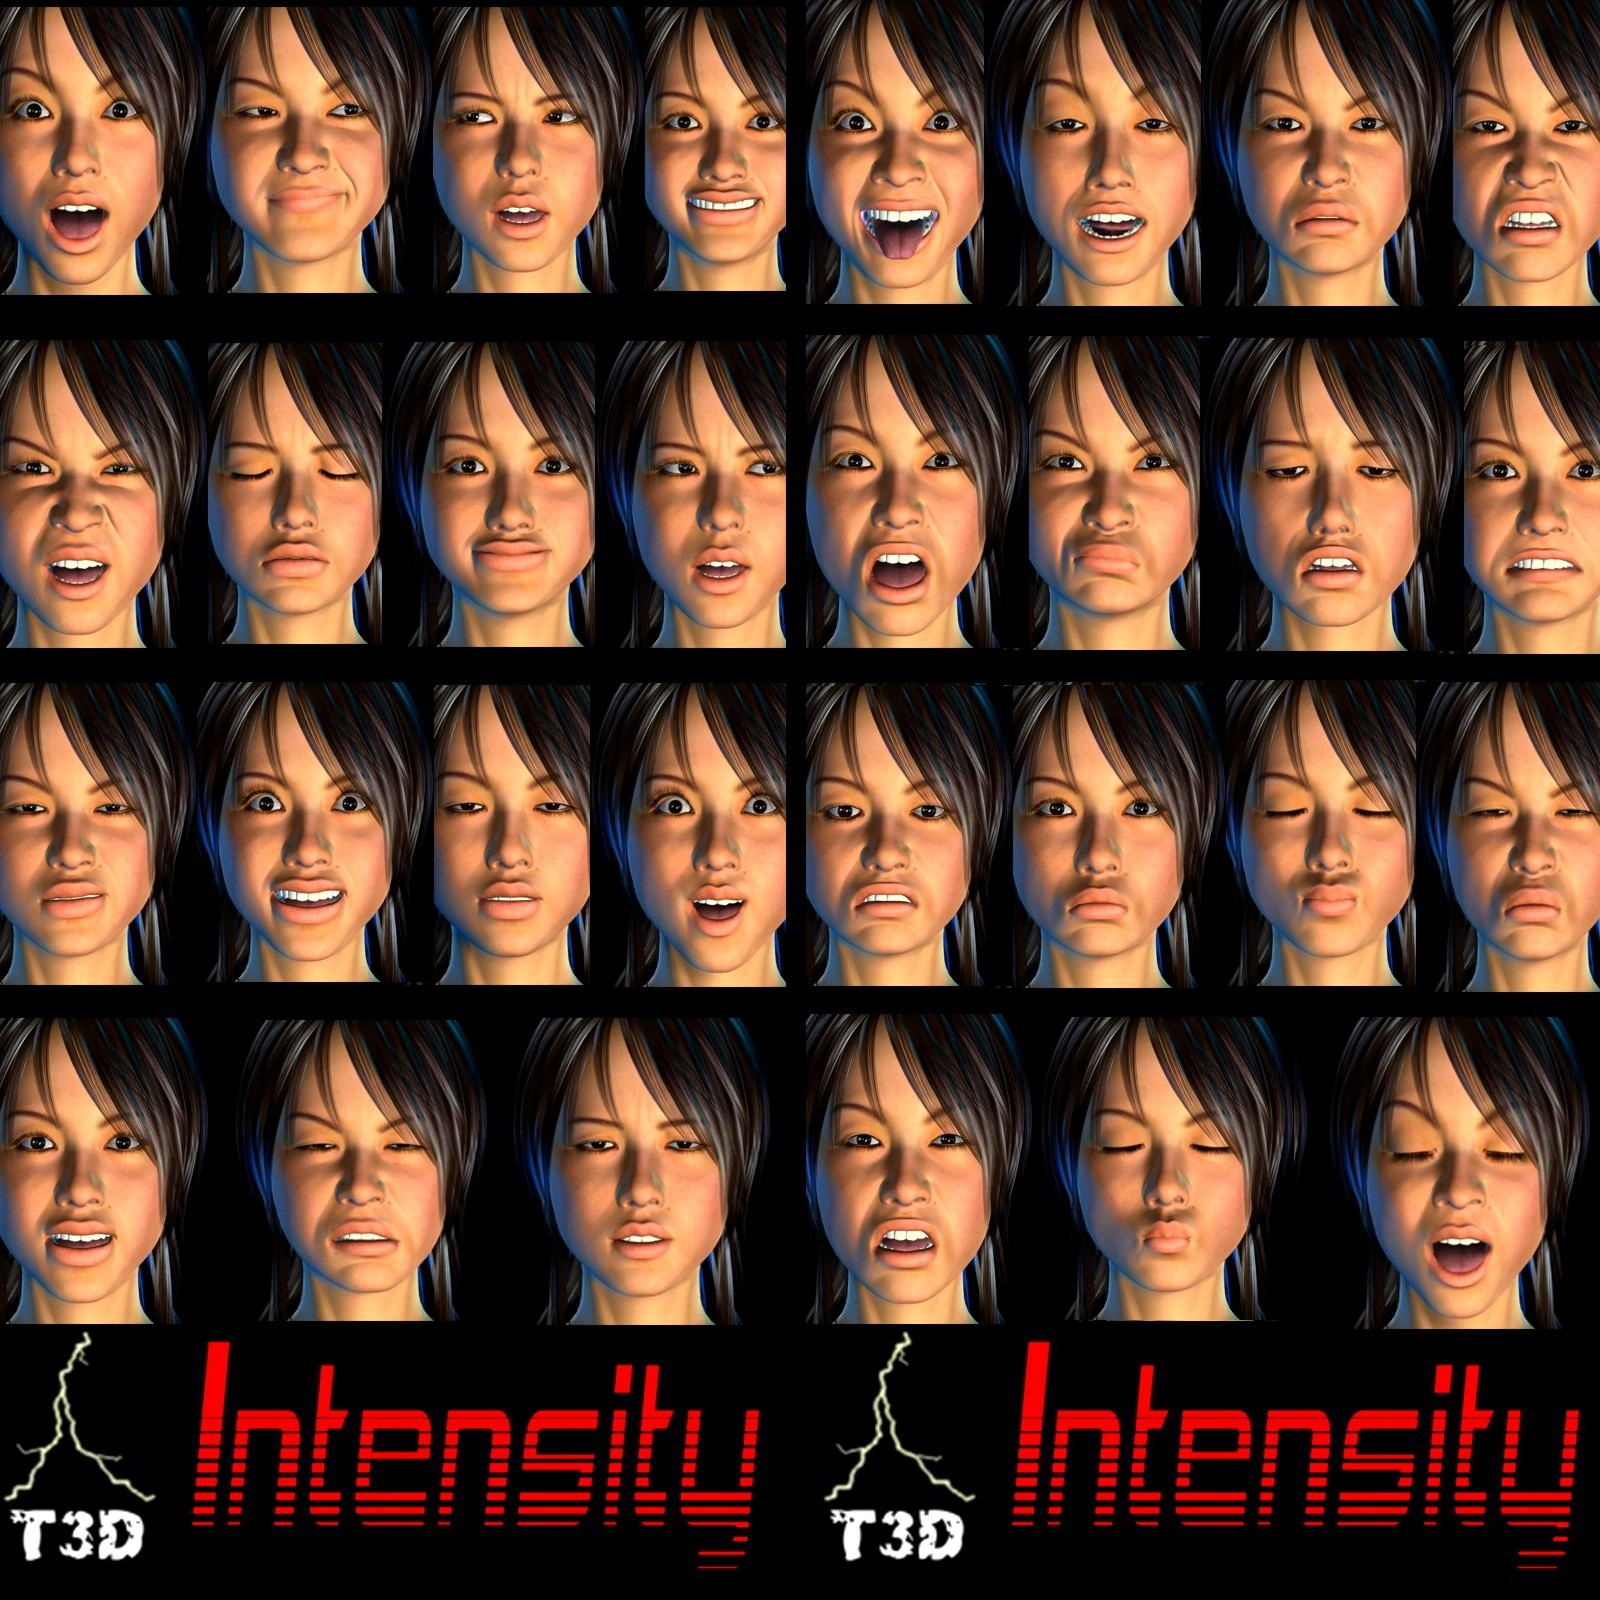 Intensity for Miki2 by Tempesta3d